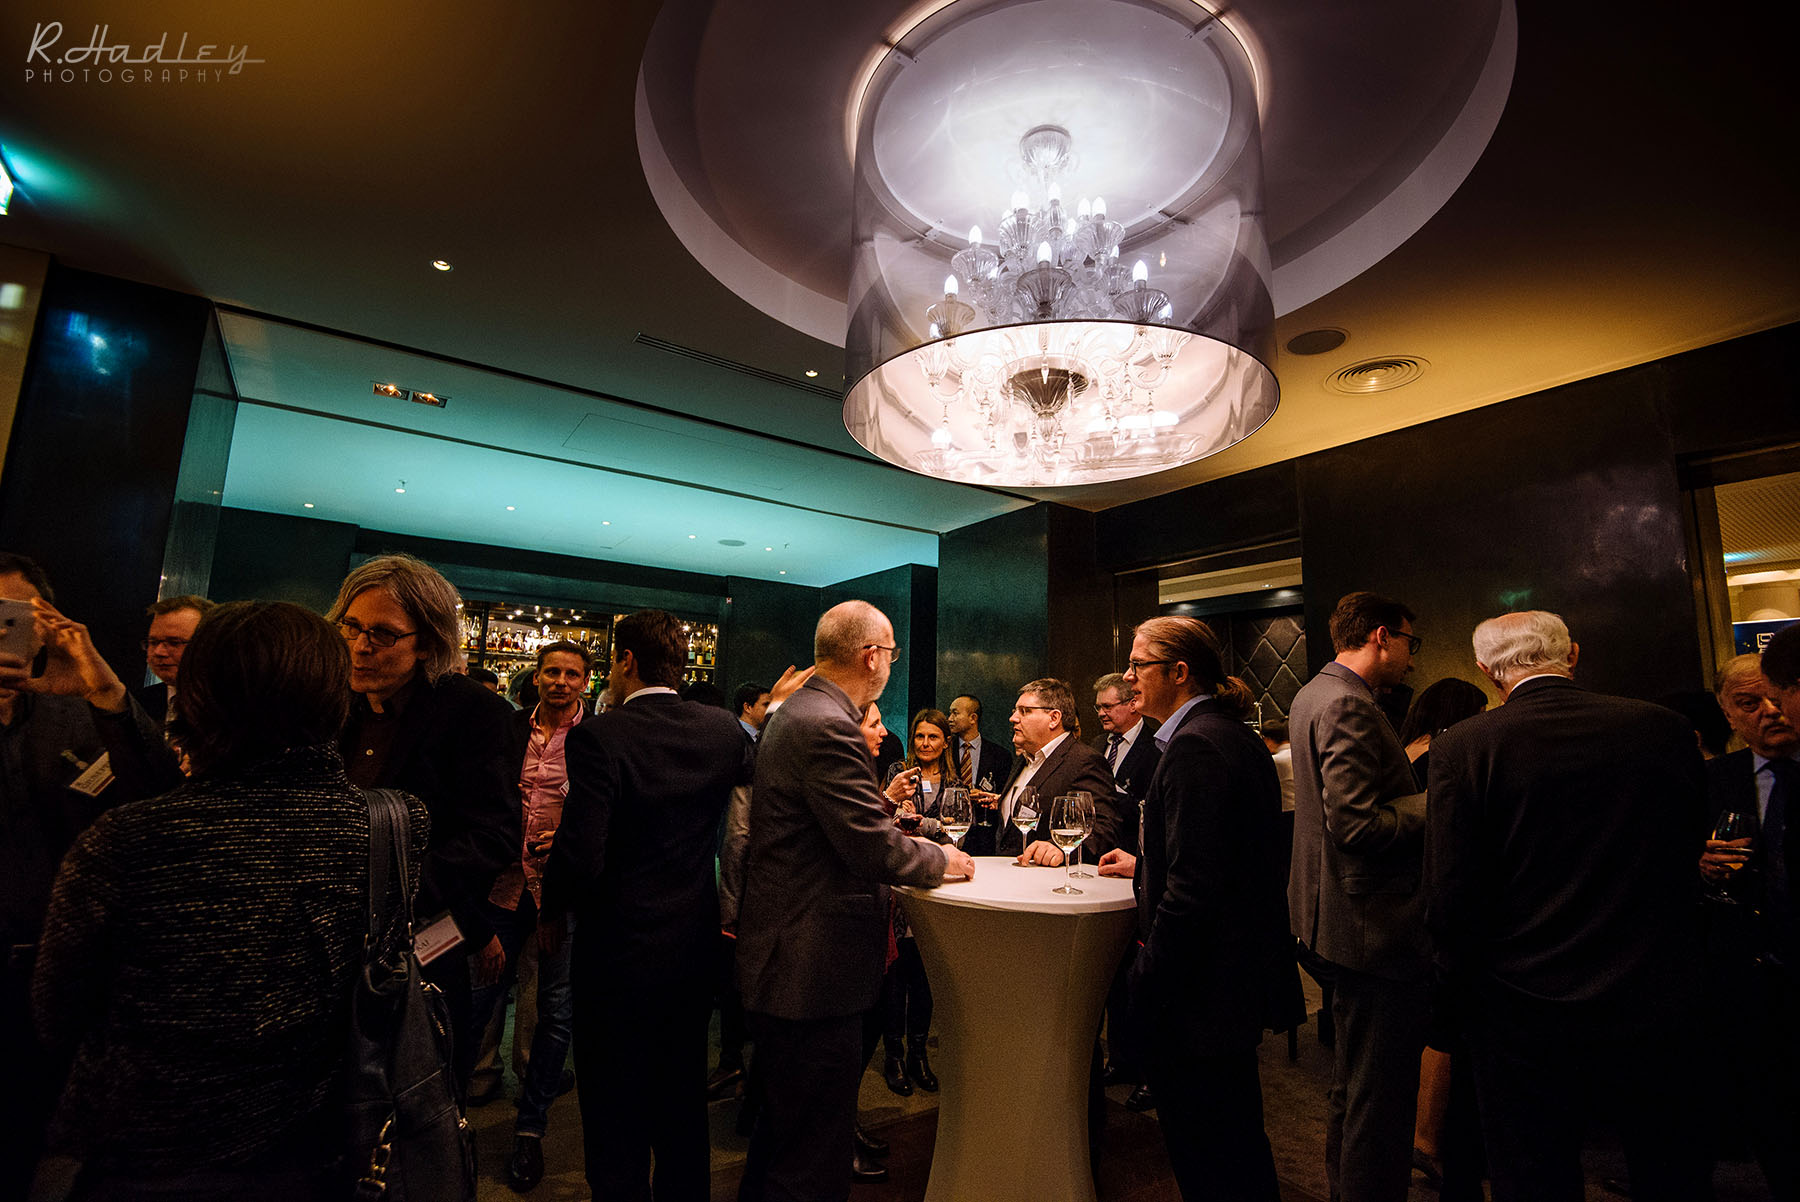 Event photography at the Palais Hansen Kempinski, Vienna, Austria